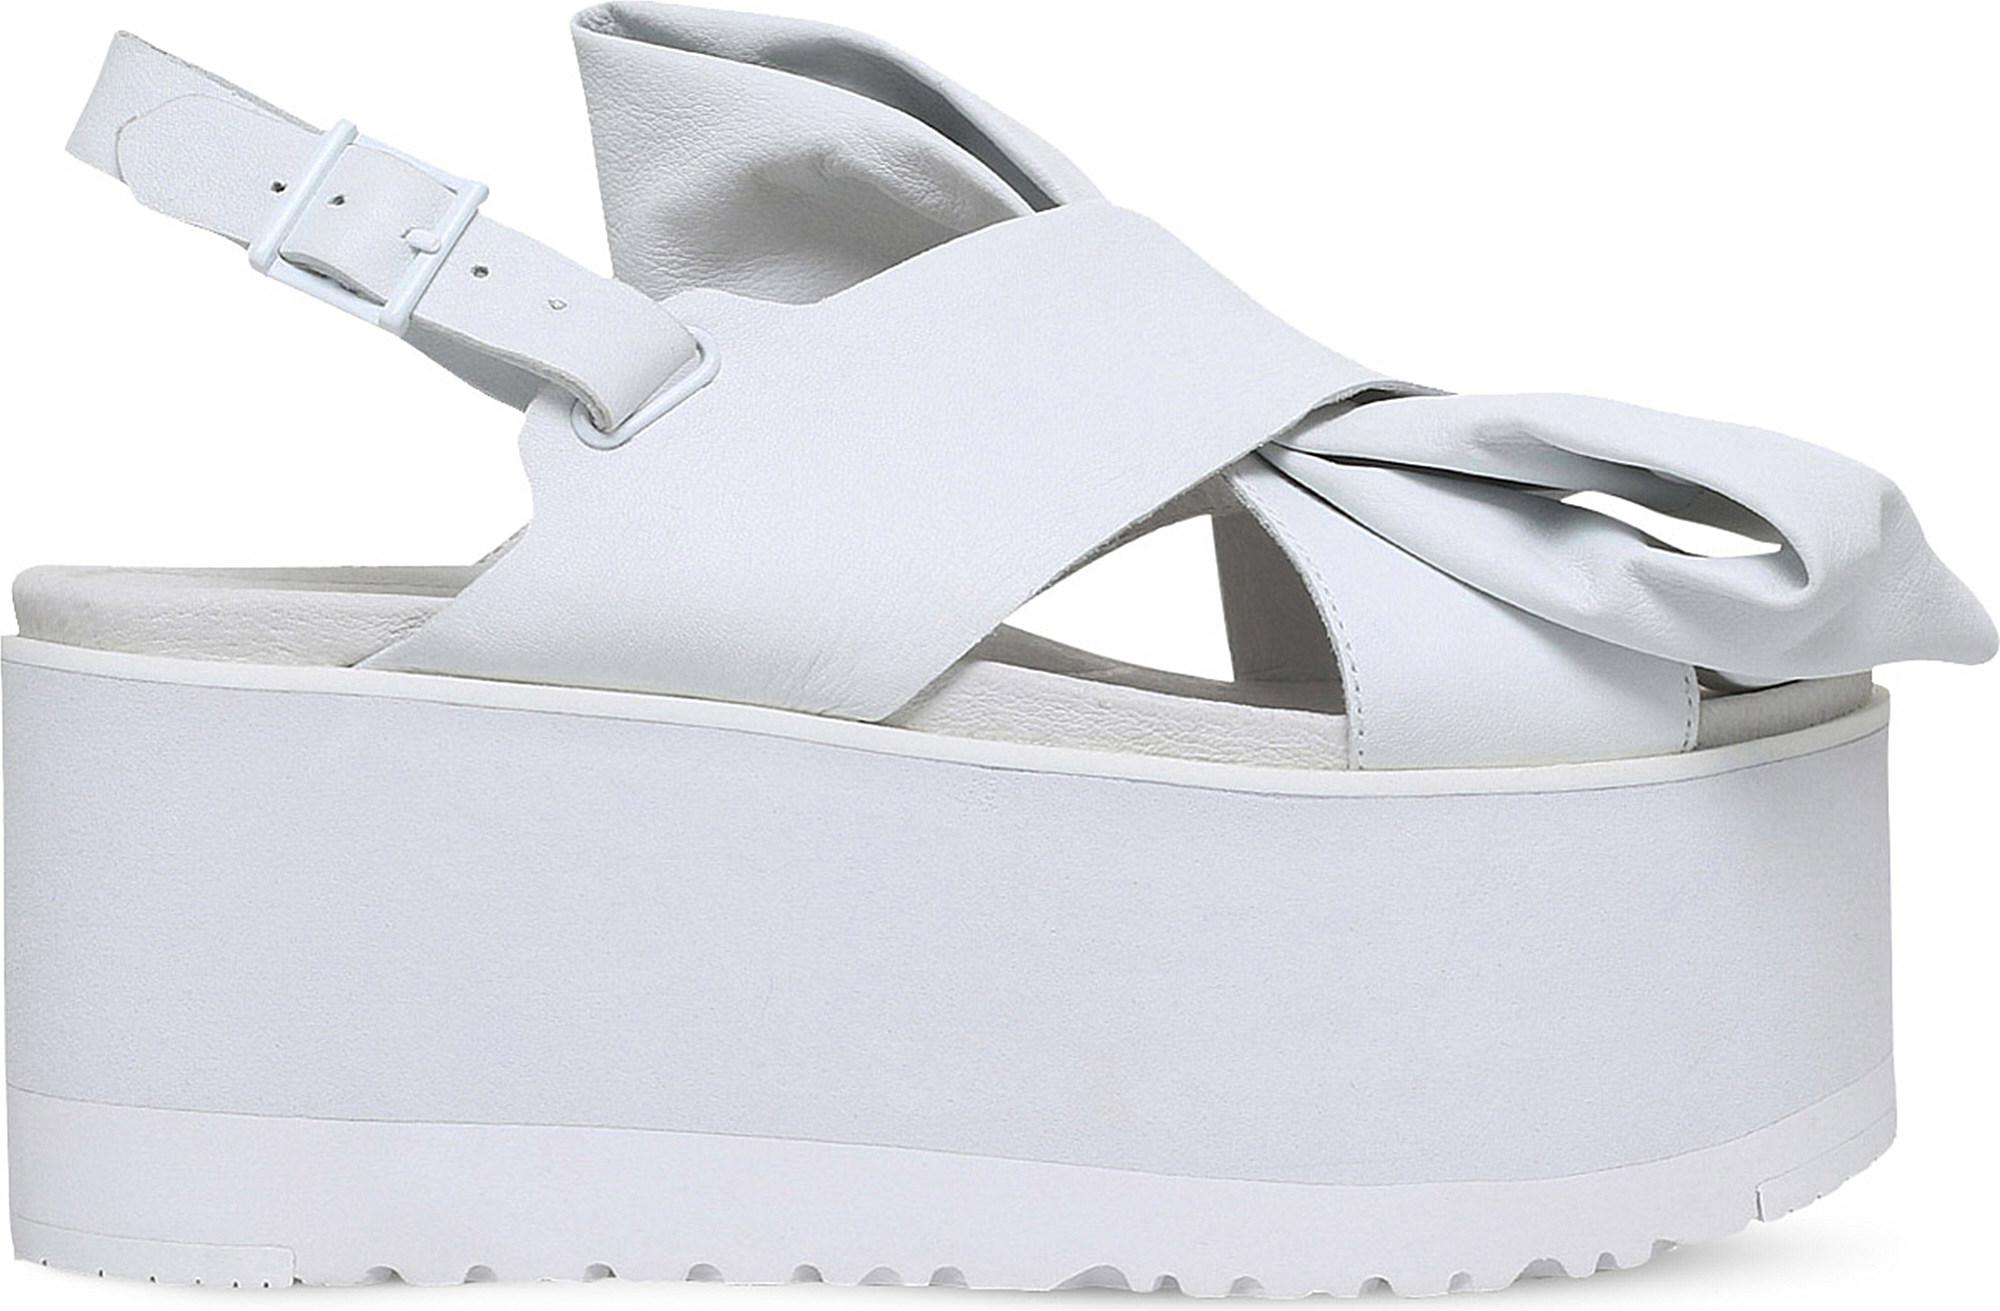 33707b3aaf8 UGG X Preen Moon Bow Leather Sandals in White - Lyst